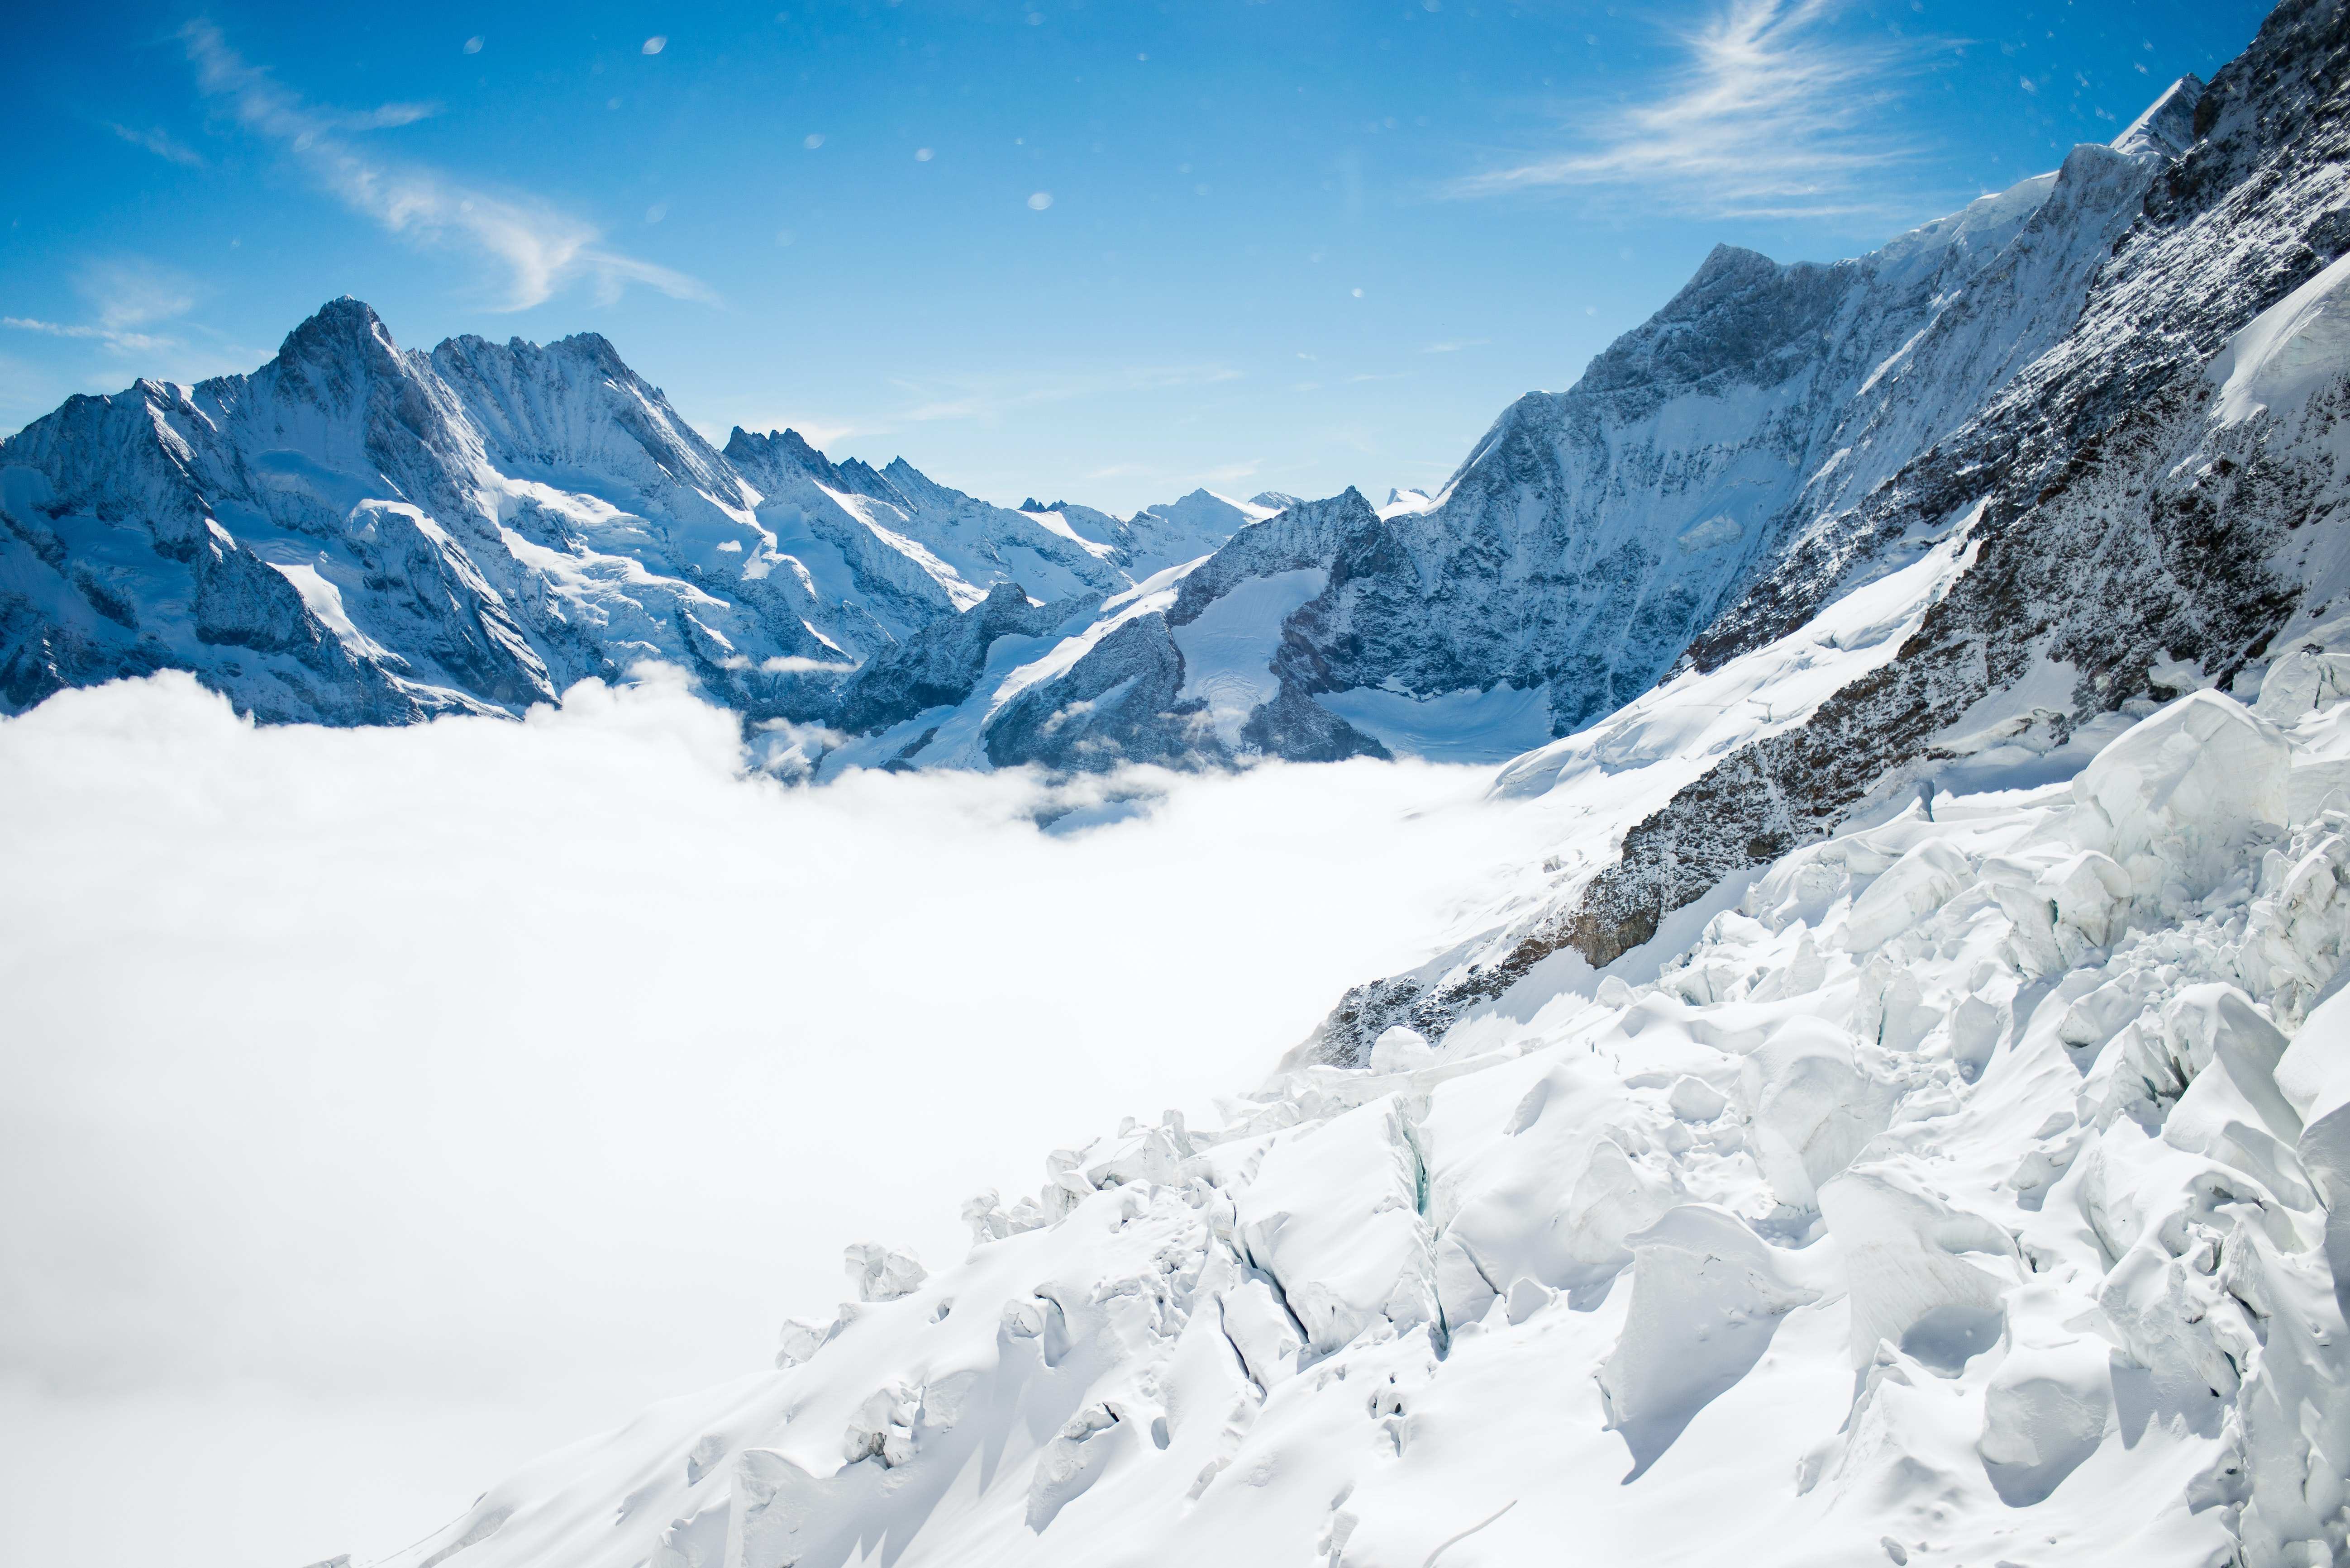 Snowy plain surrounded by snow covered mountains with a bright blue sky